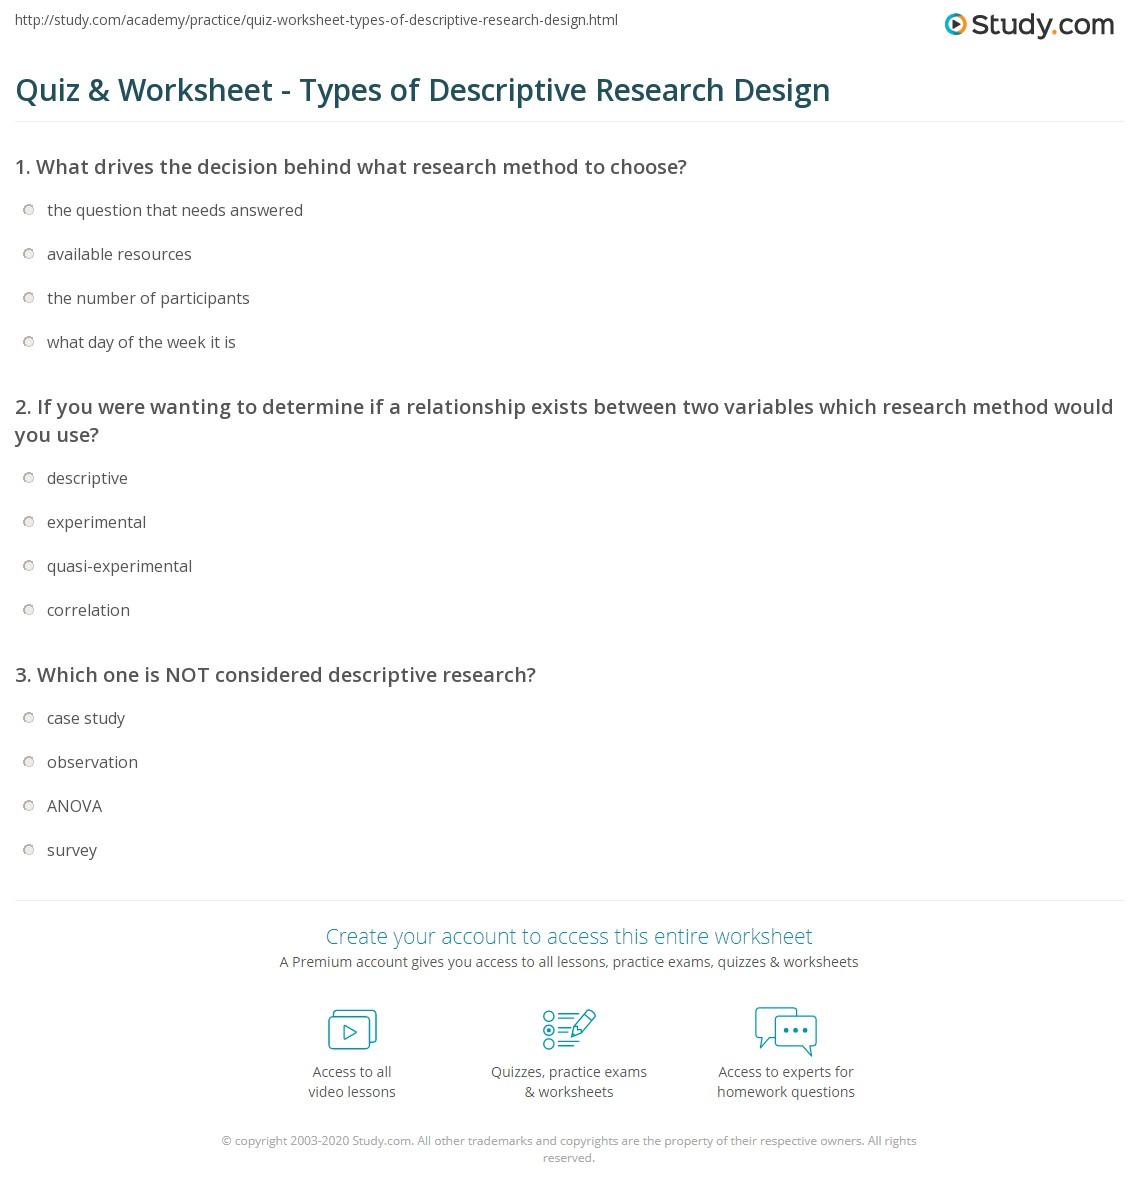 descriptive research design in thesis Design ®ts into the whole research process from framing a question to ®nally analysing and reporting data this is the purpose of this chapter description and explanation social researchers ask two fundamental types of research questions : 1 what is going on (descriptive research) 2 why is it going on (explanatory.